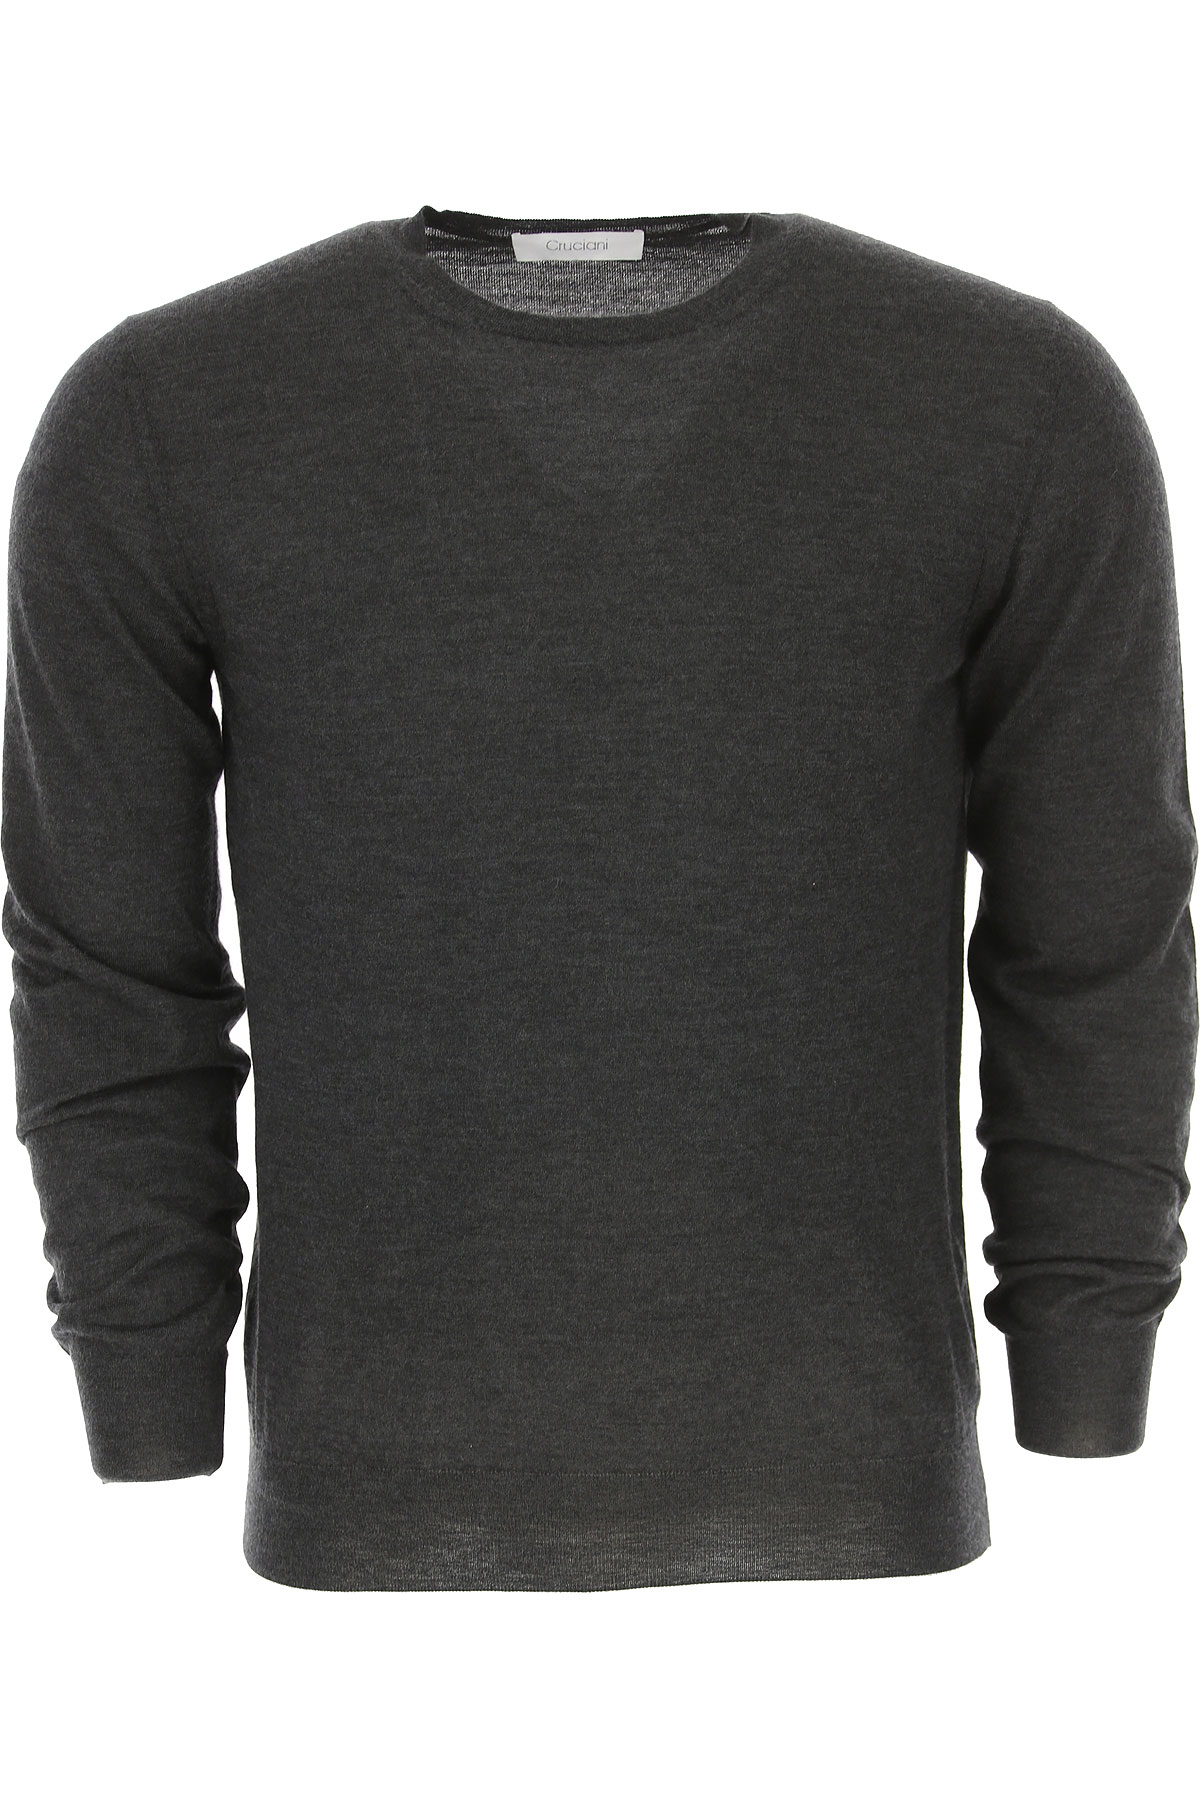 Image of Cruciani Sweater for Men Jumper, Anthracite Grey, Cashmere, 2017, L M XL